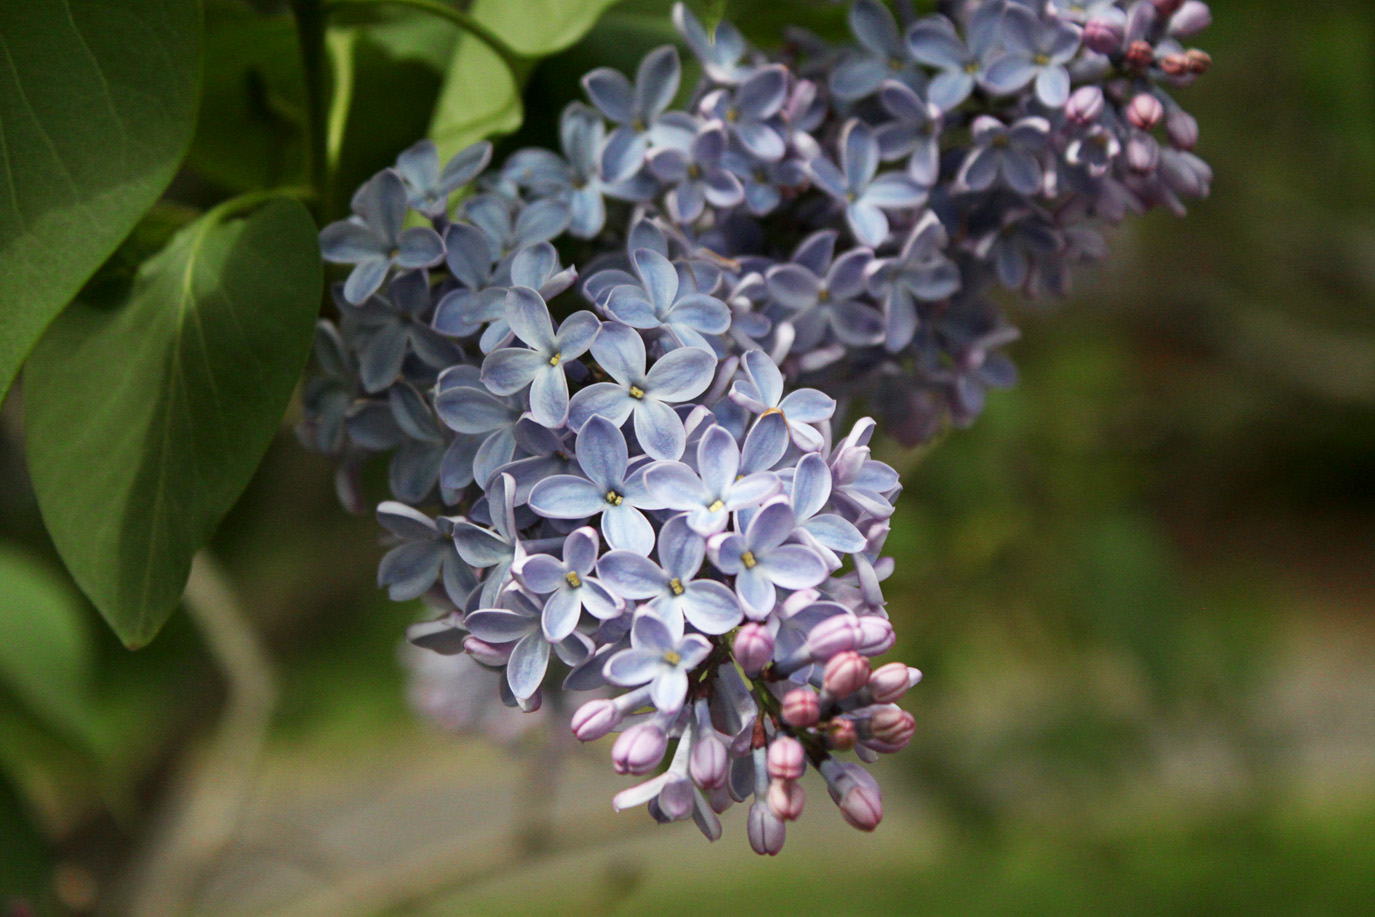 President Lincoln Lilac by Justine Hand for Gardenista